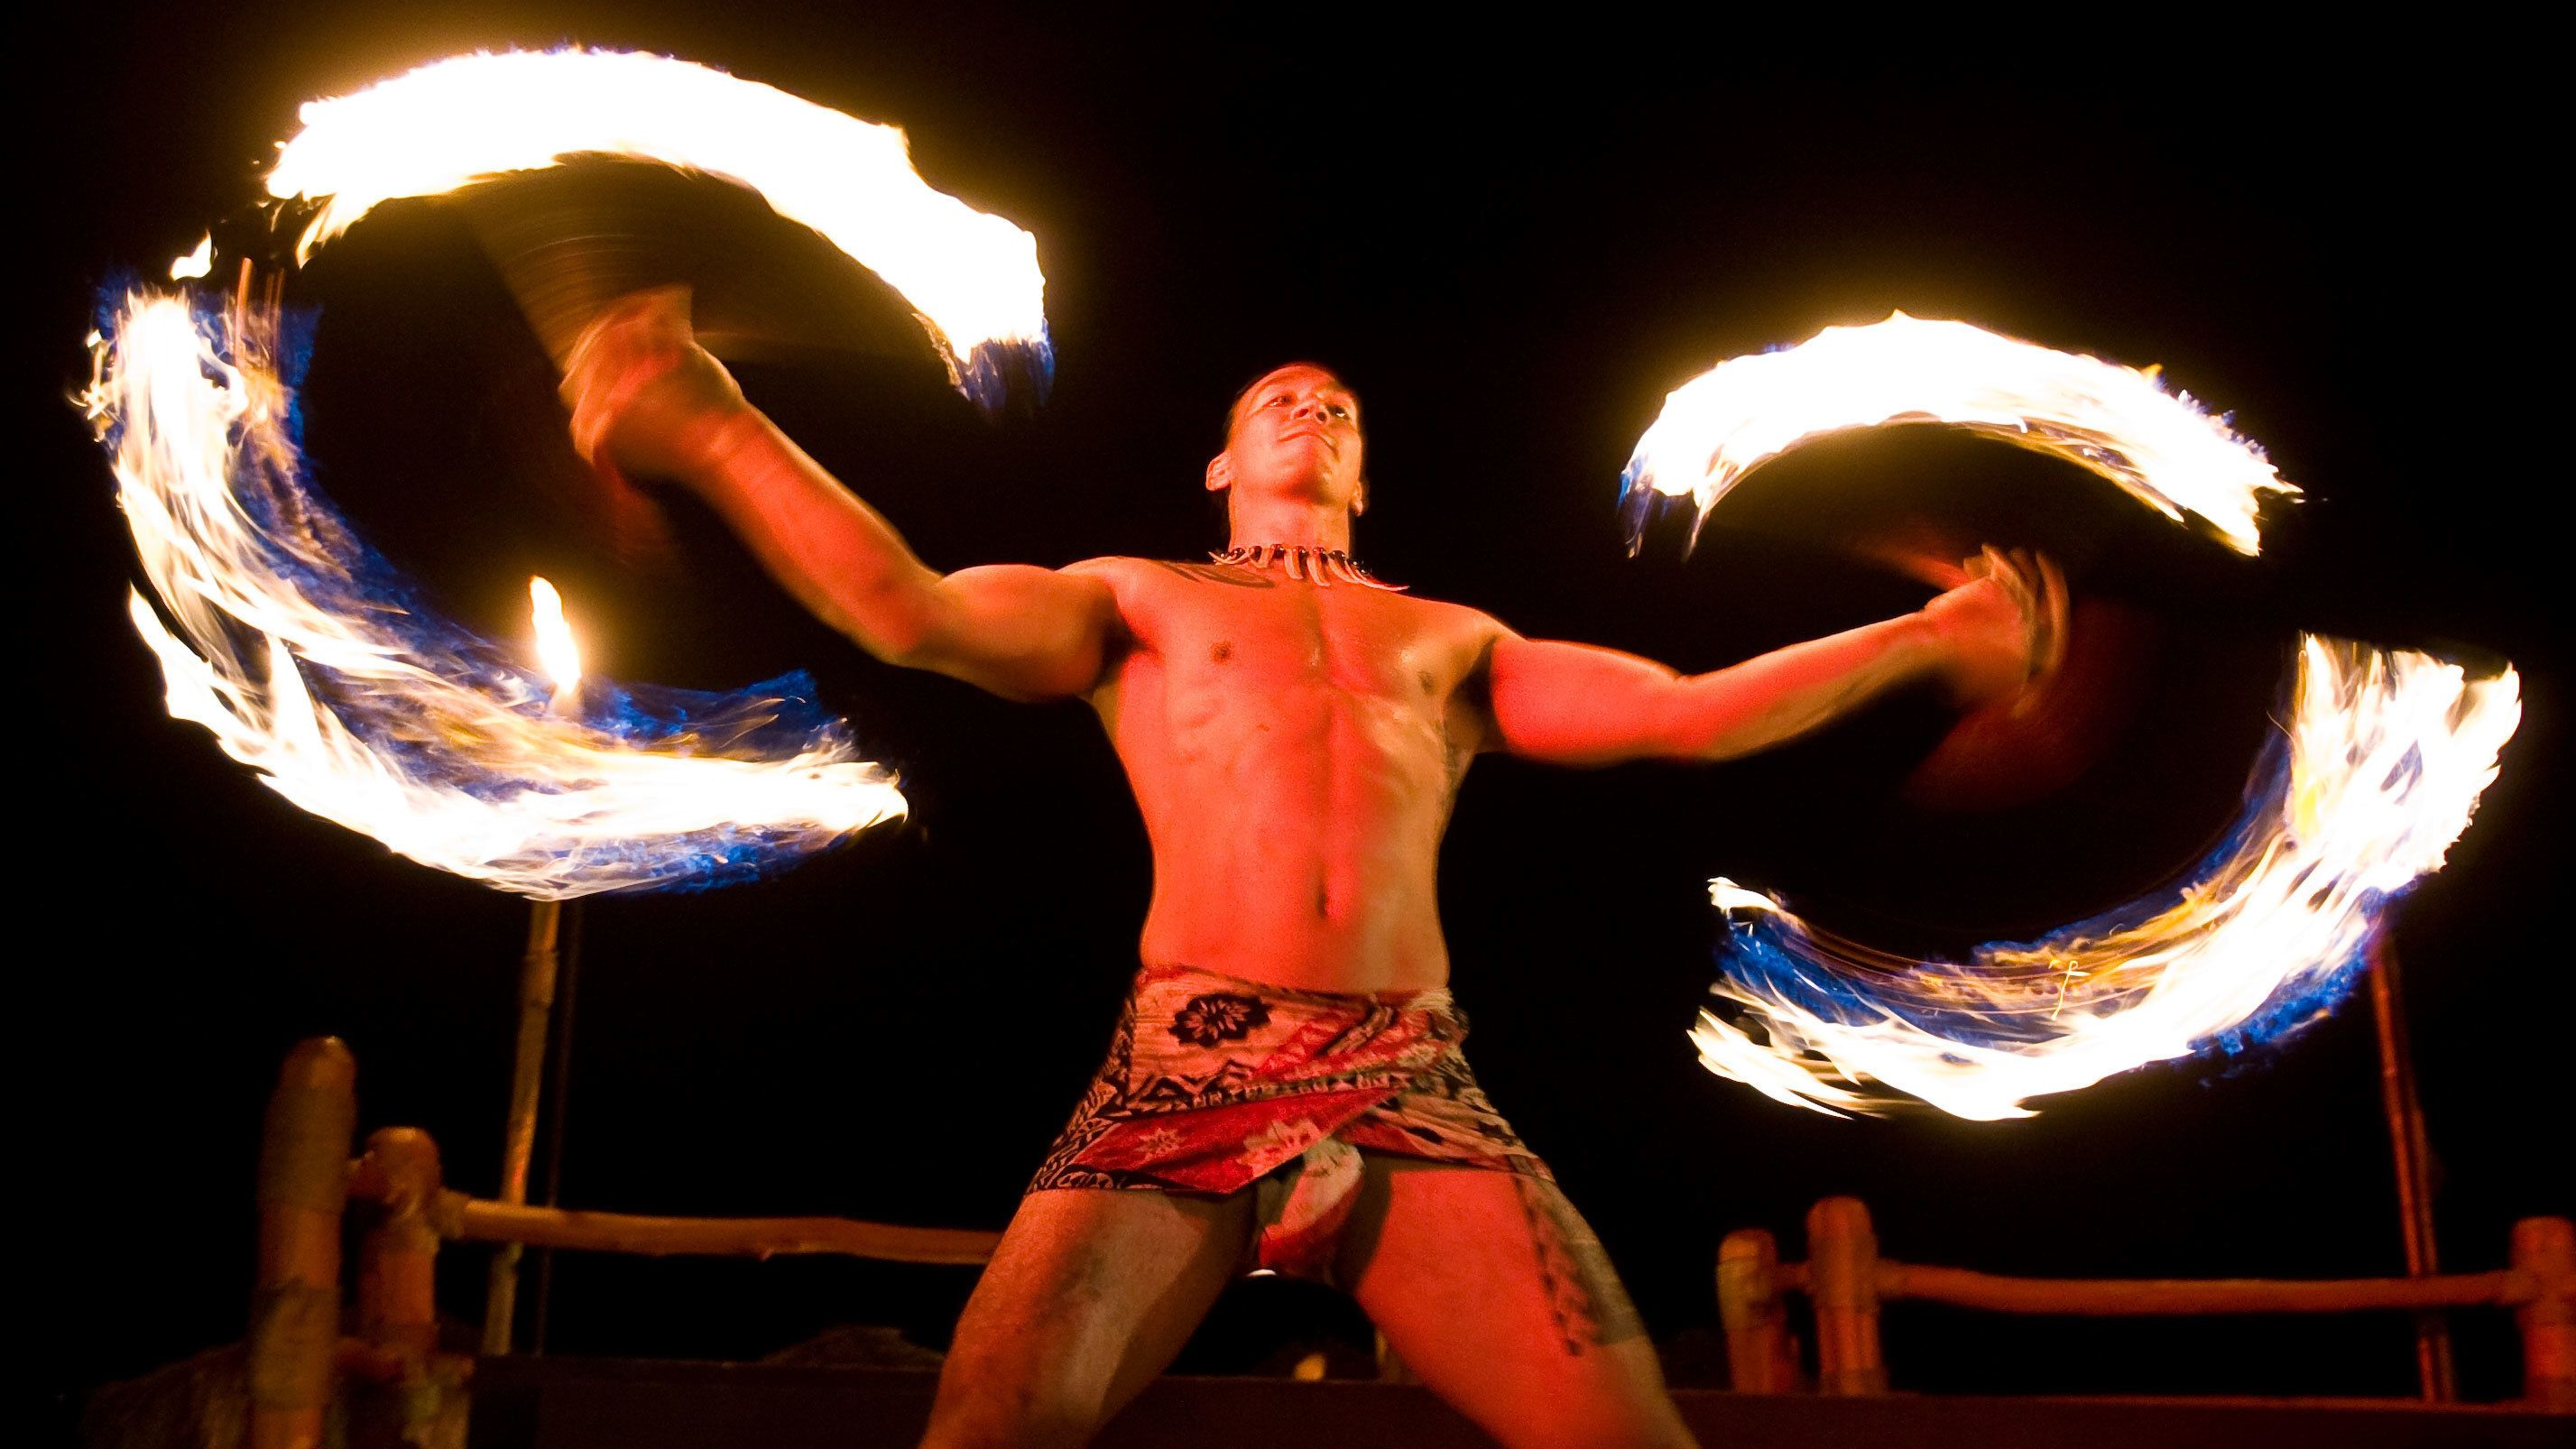 Male swing fire in the Te Au Moana Luau performance in Maui